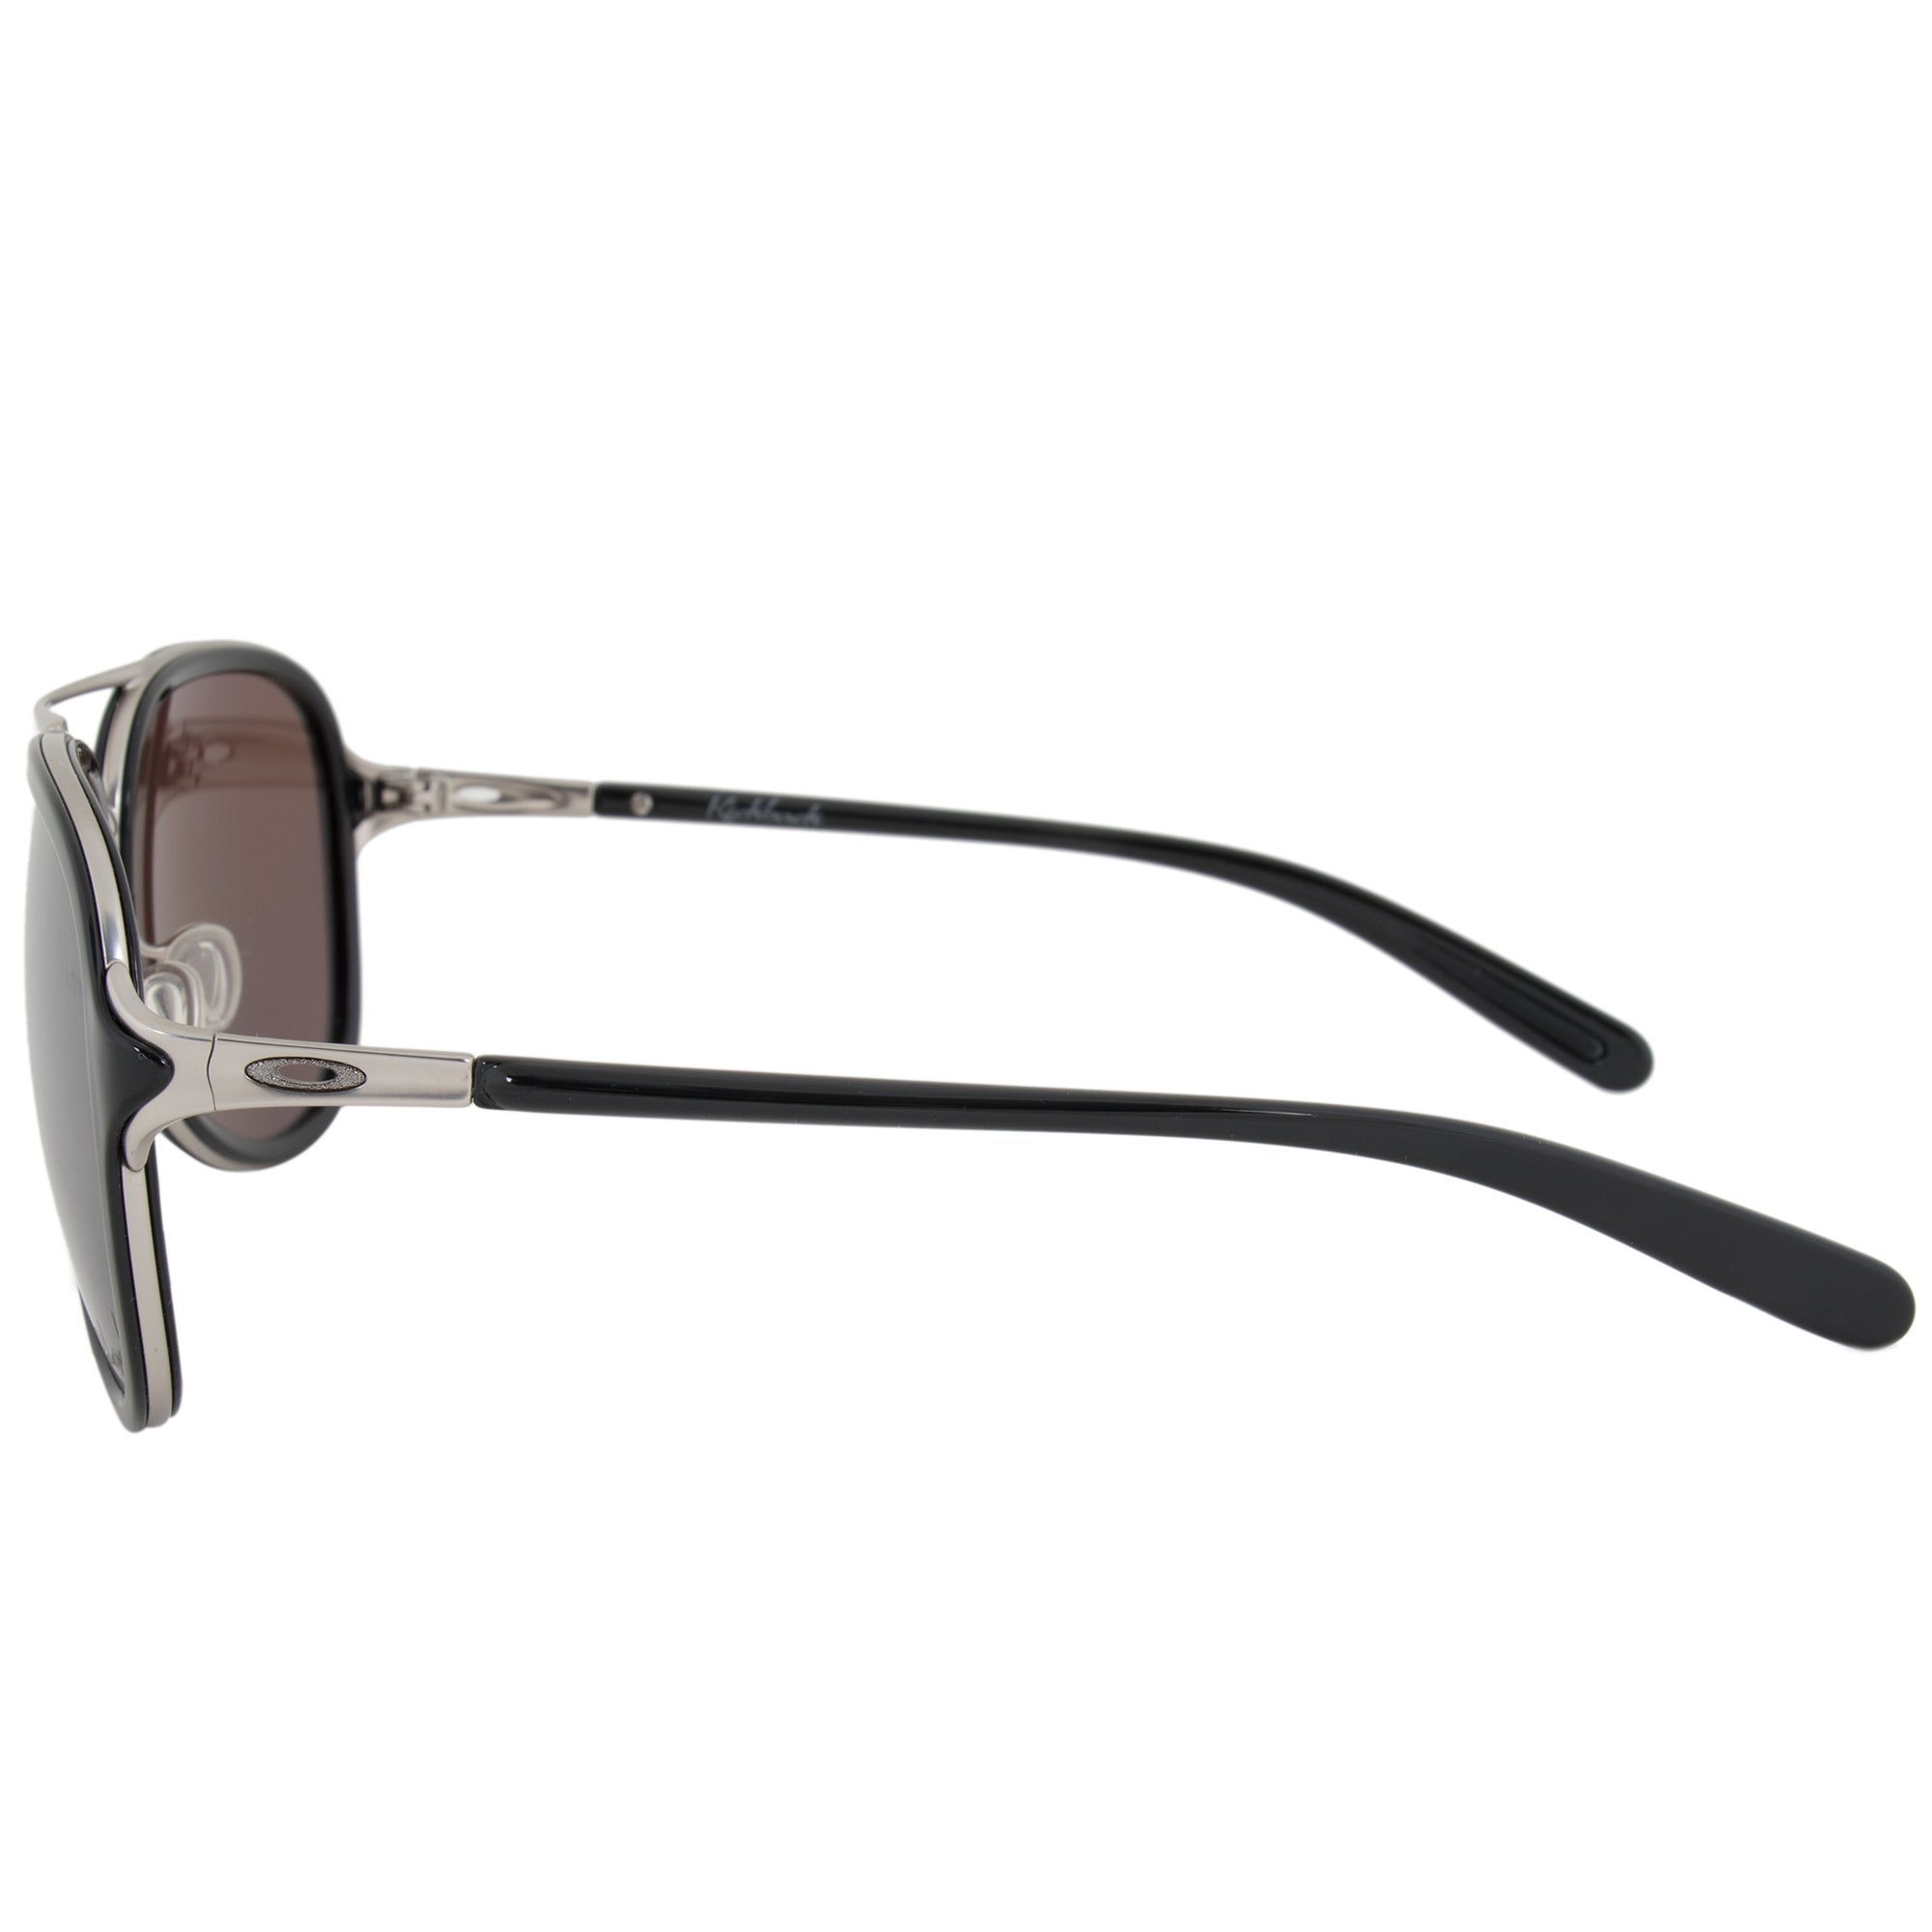 a5f5b2492 Shop Oakley Kickback Pilot Sunglasses 0OO4102 410206 58 - Free Shipping  Today - Overstock - 21408827